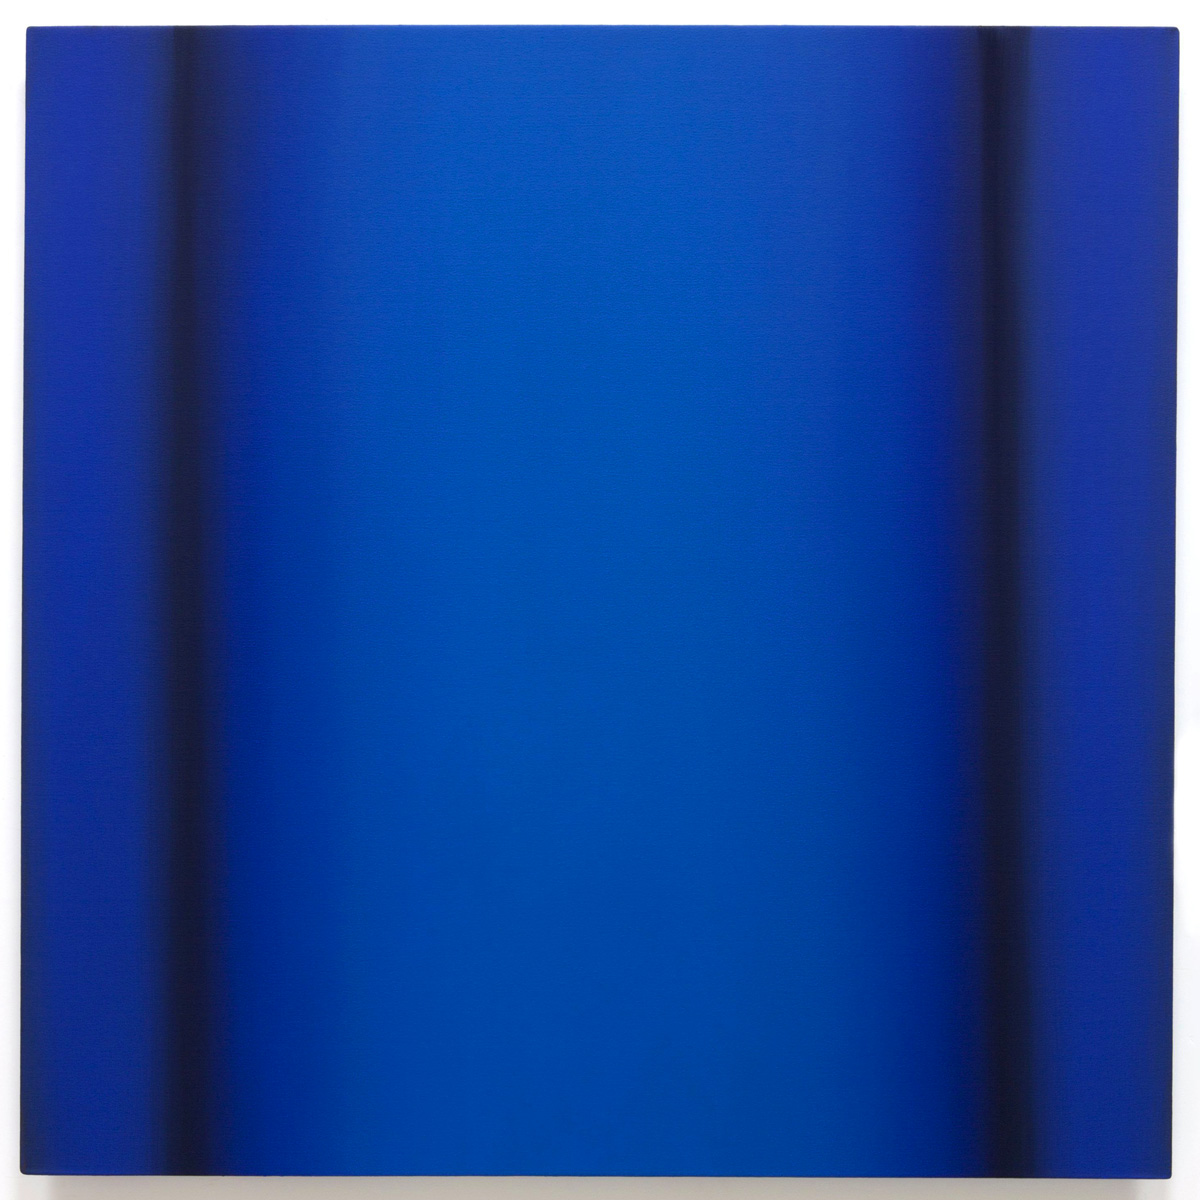 Blue Orange 1-S4848 (Blue Deep), Interplay Series, 2013, oil on canvas on custom beveled stretcher, 48 x 48 in. (122 x 122 cm.)